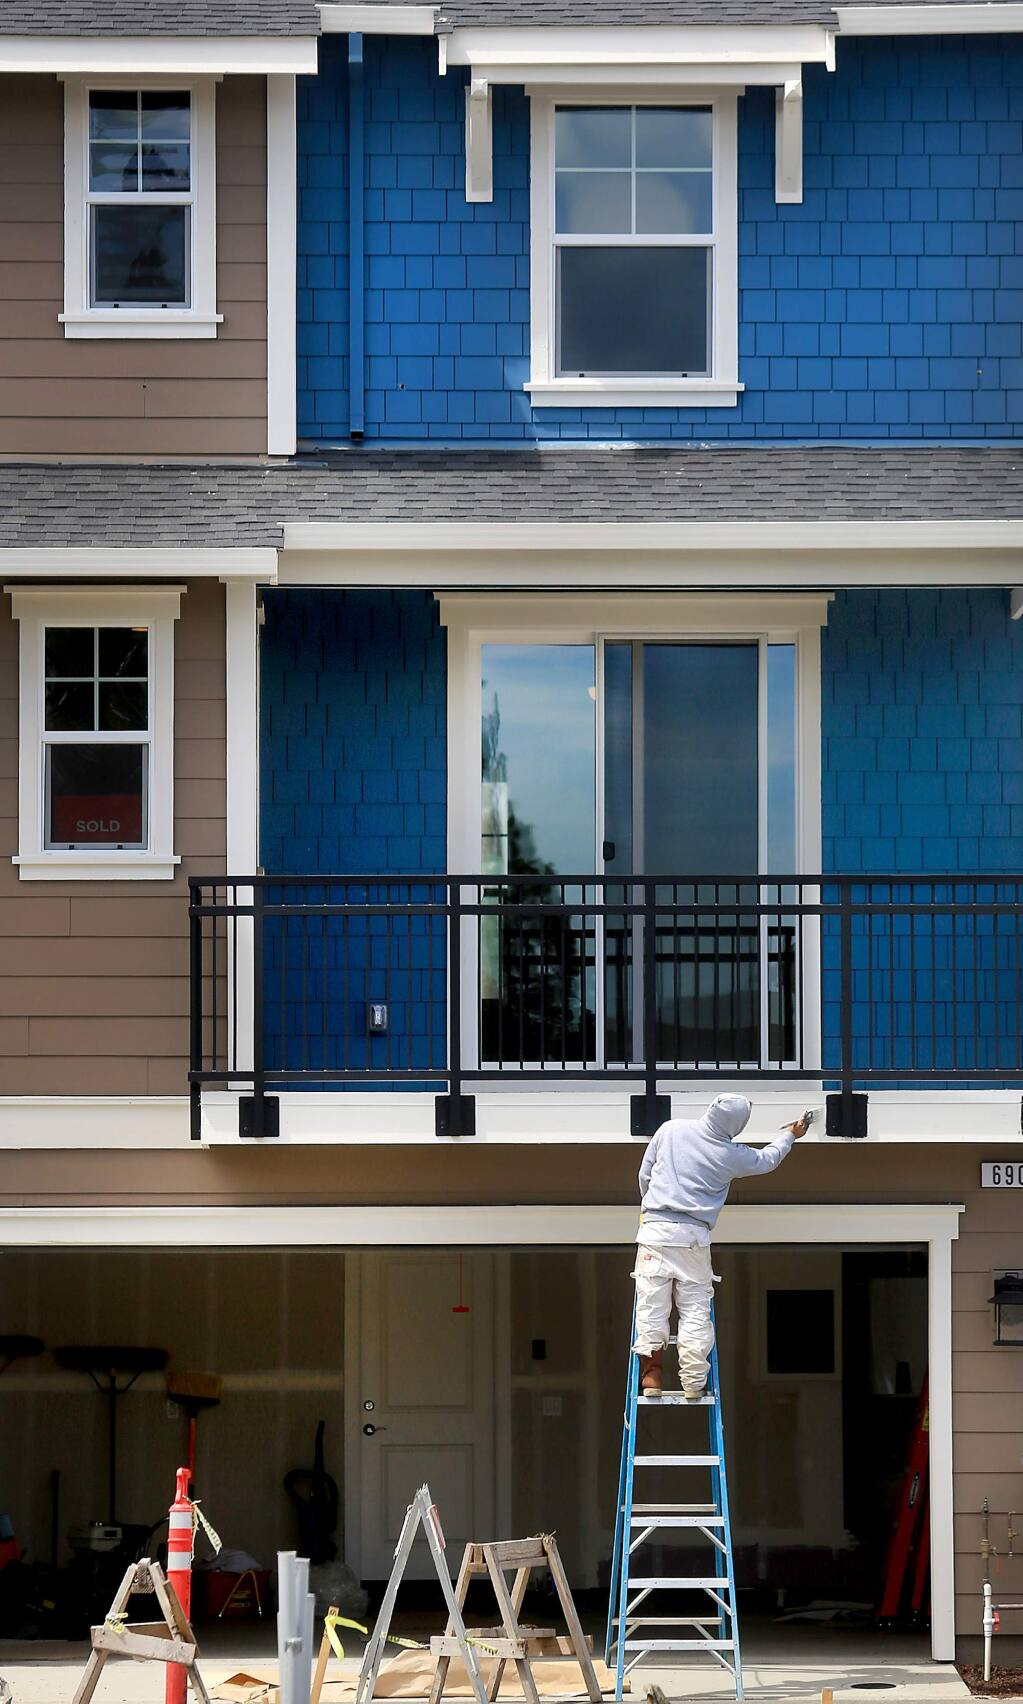 Jaime Martinez Lopez paints trim on a townhouse at Village Walk in Cotati, Thursday April 27, 2017, one of 46 townhomes and single family homes by Synergie Communities. (Kent Porter / The Press Democrat) 2017